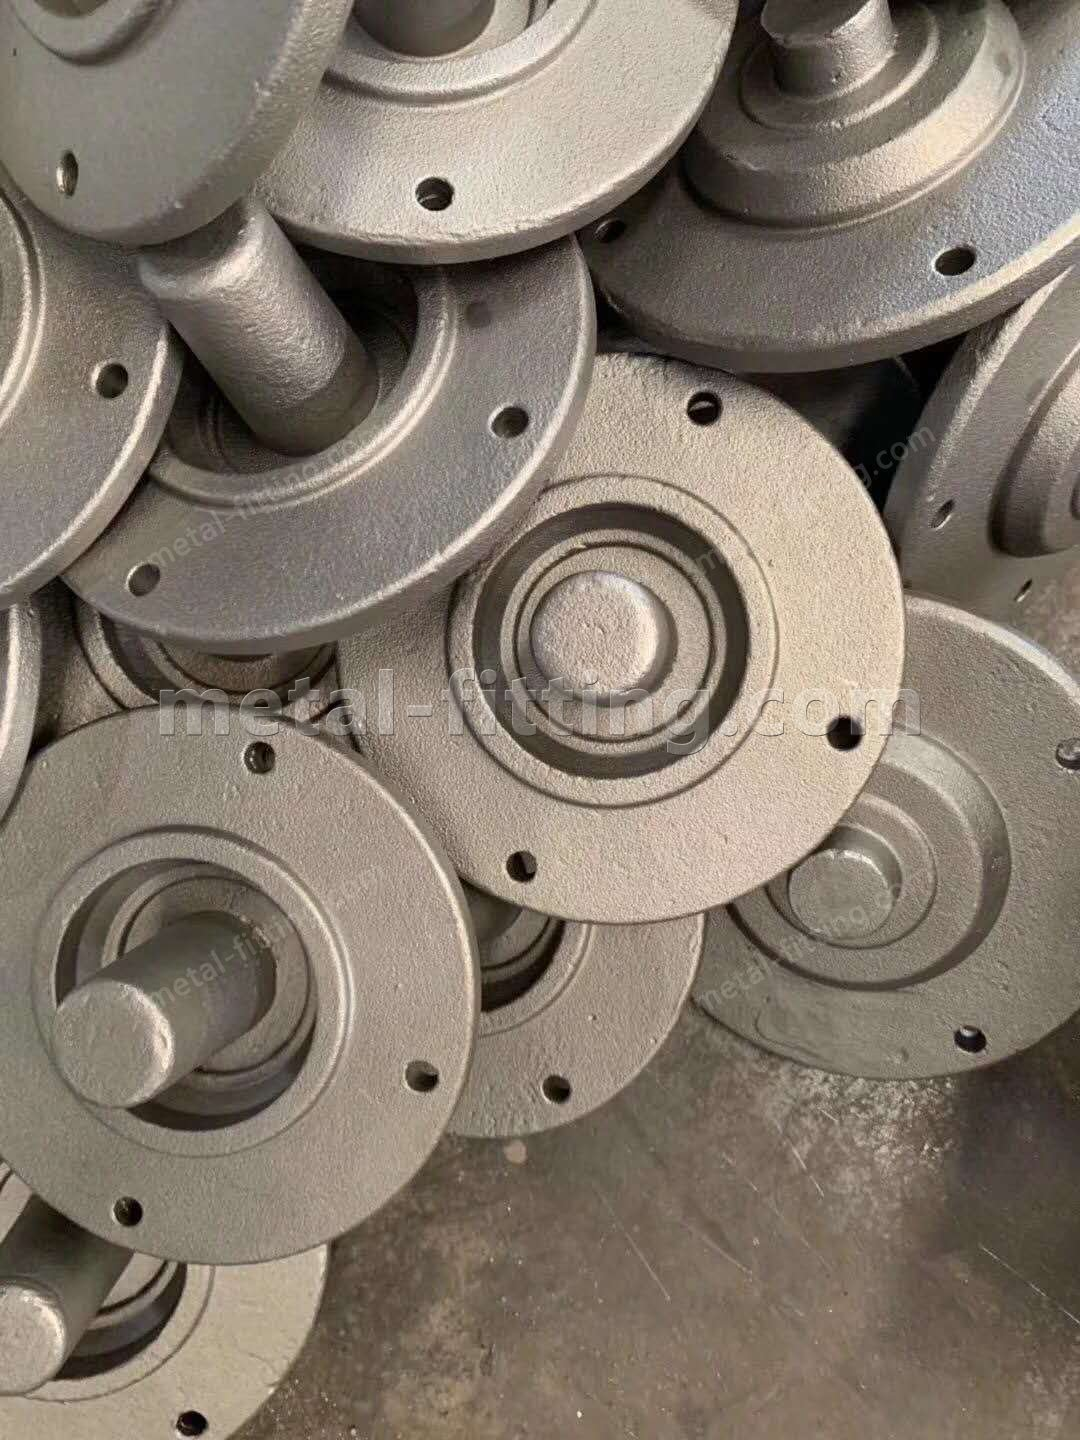 cast steel part for building part or auto spare parts-85db64ff5e09c17abe3f148f8987e69